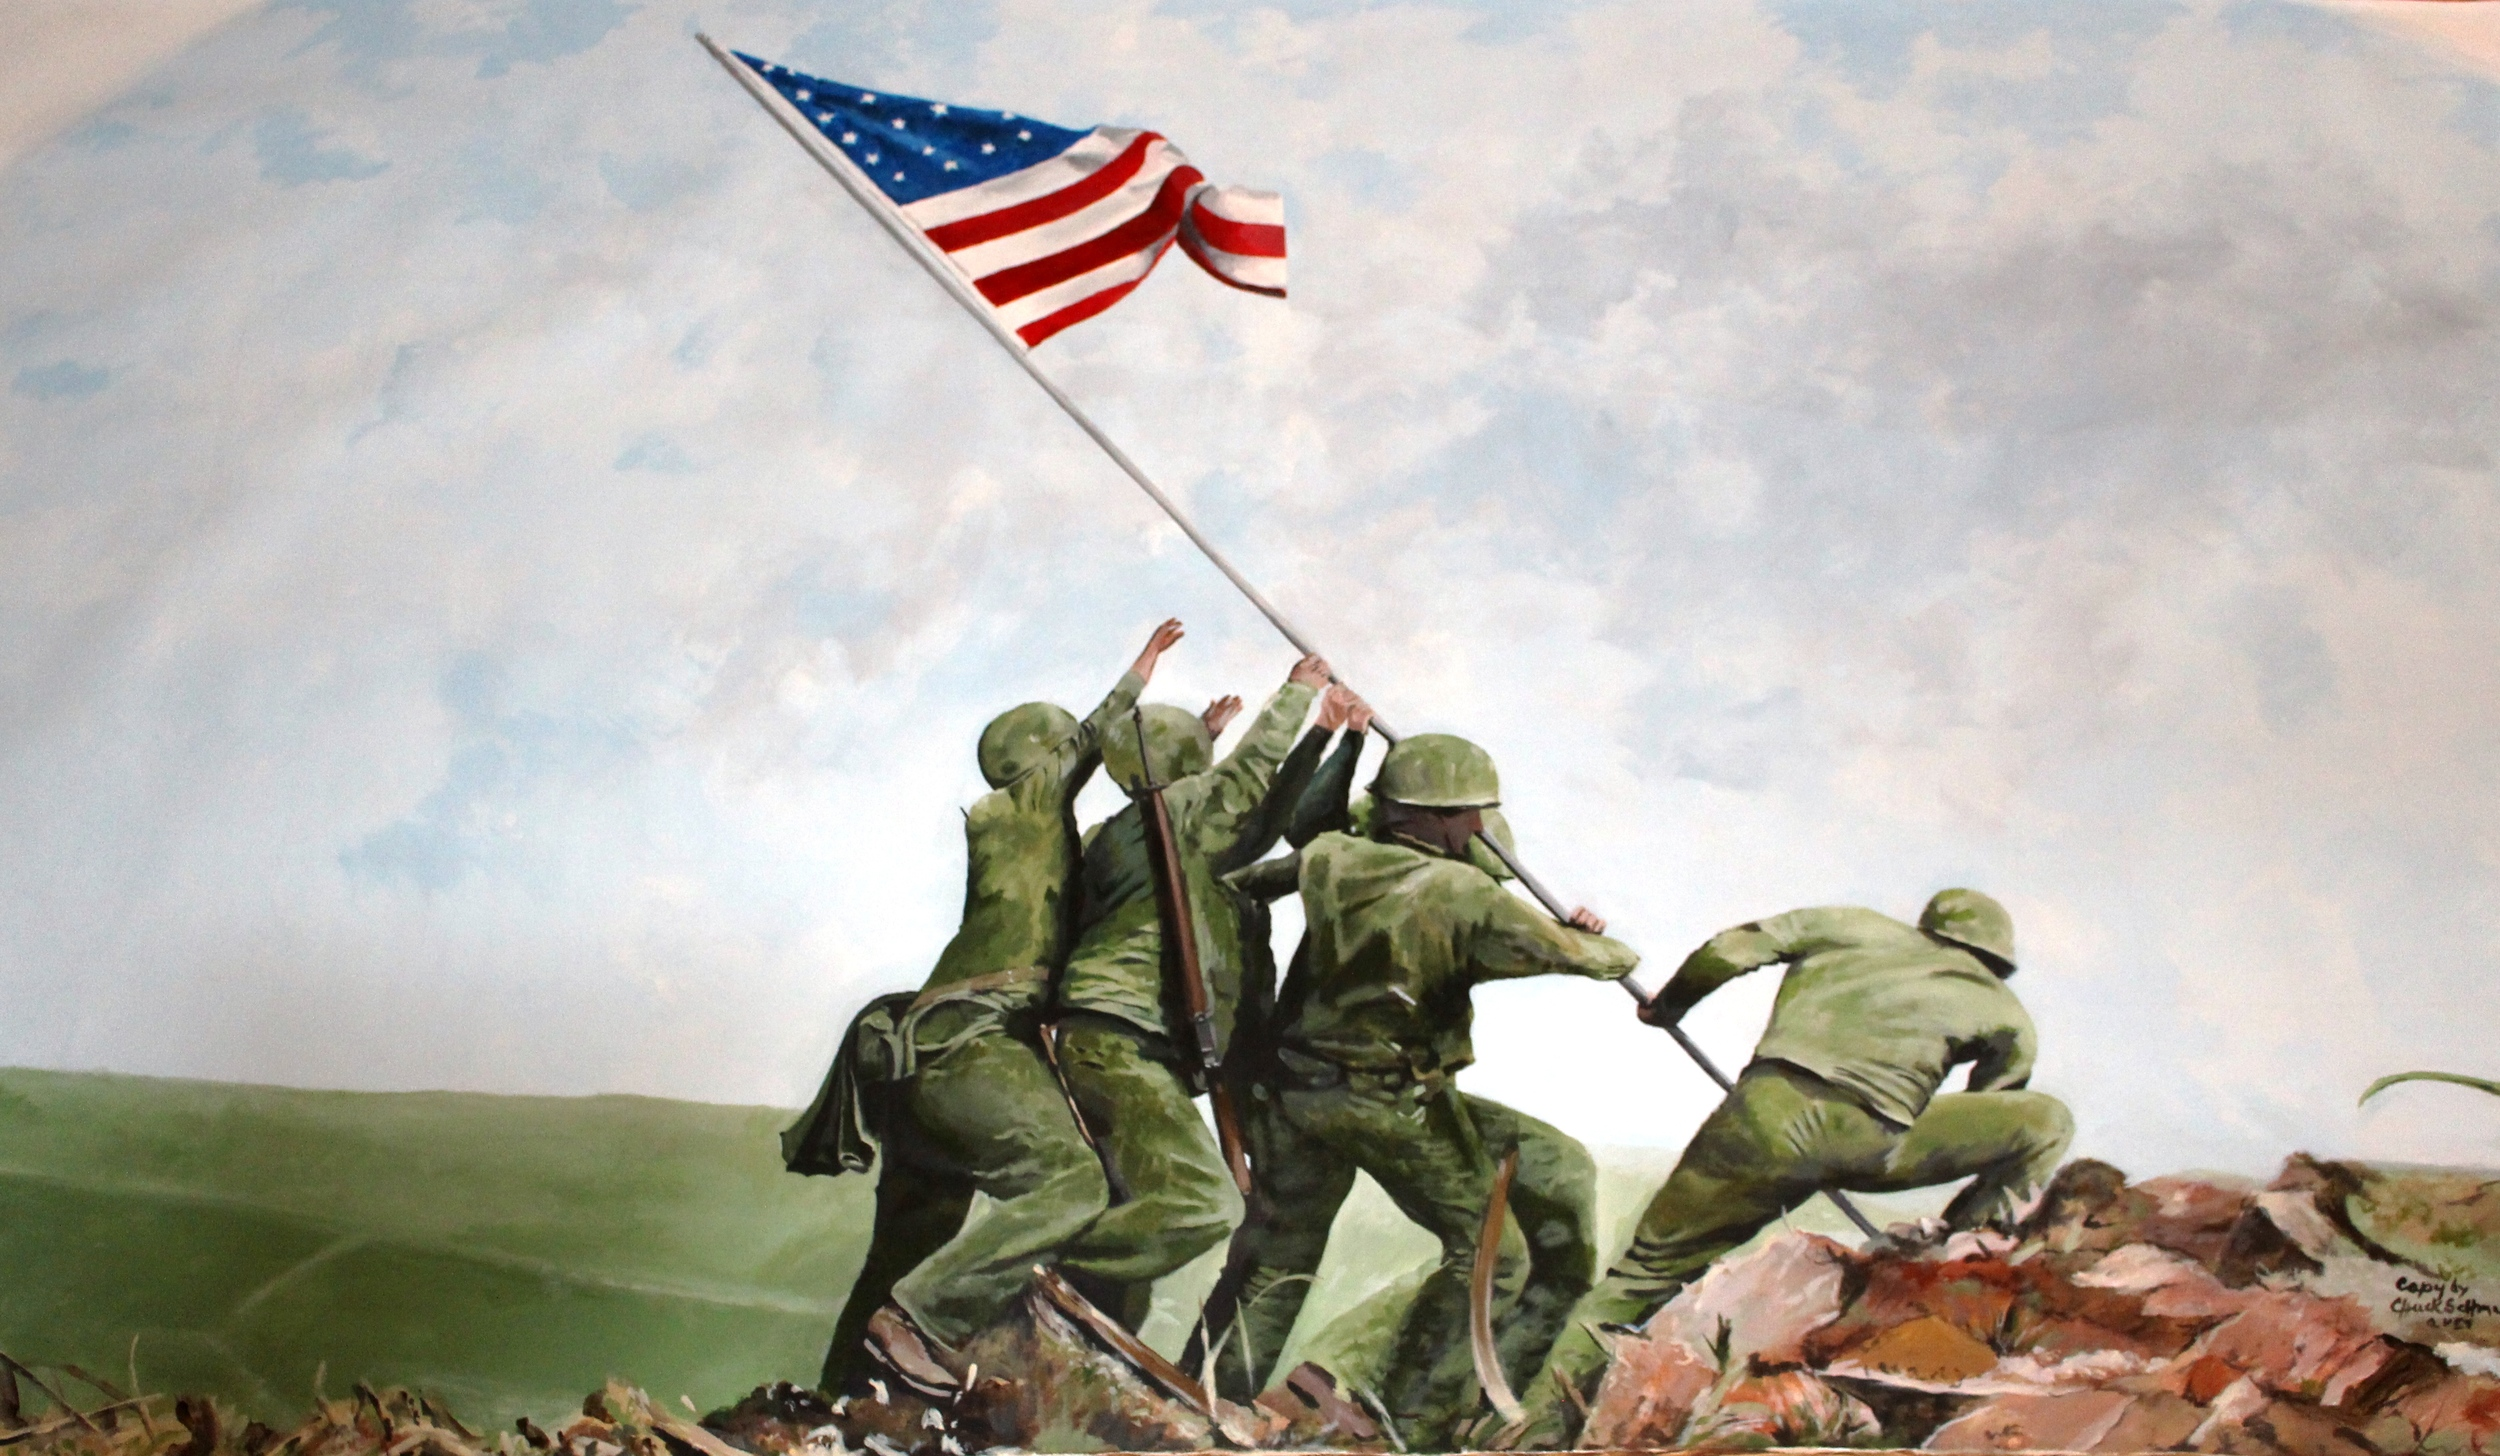 The second flag raising at Iwo Jima